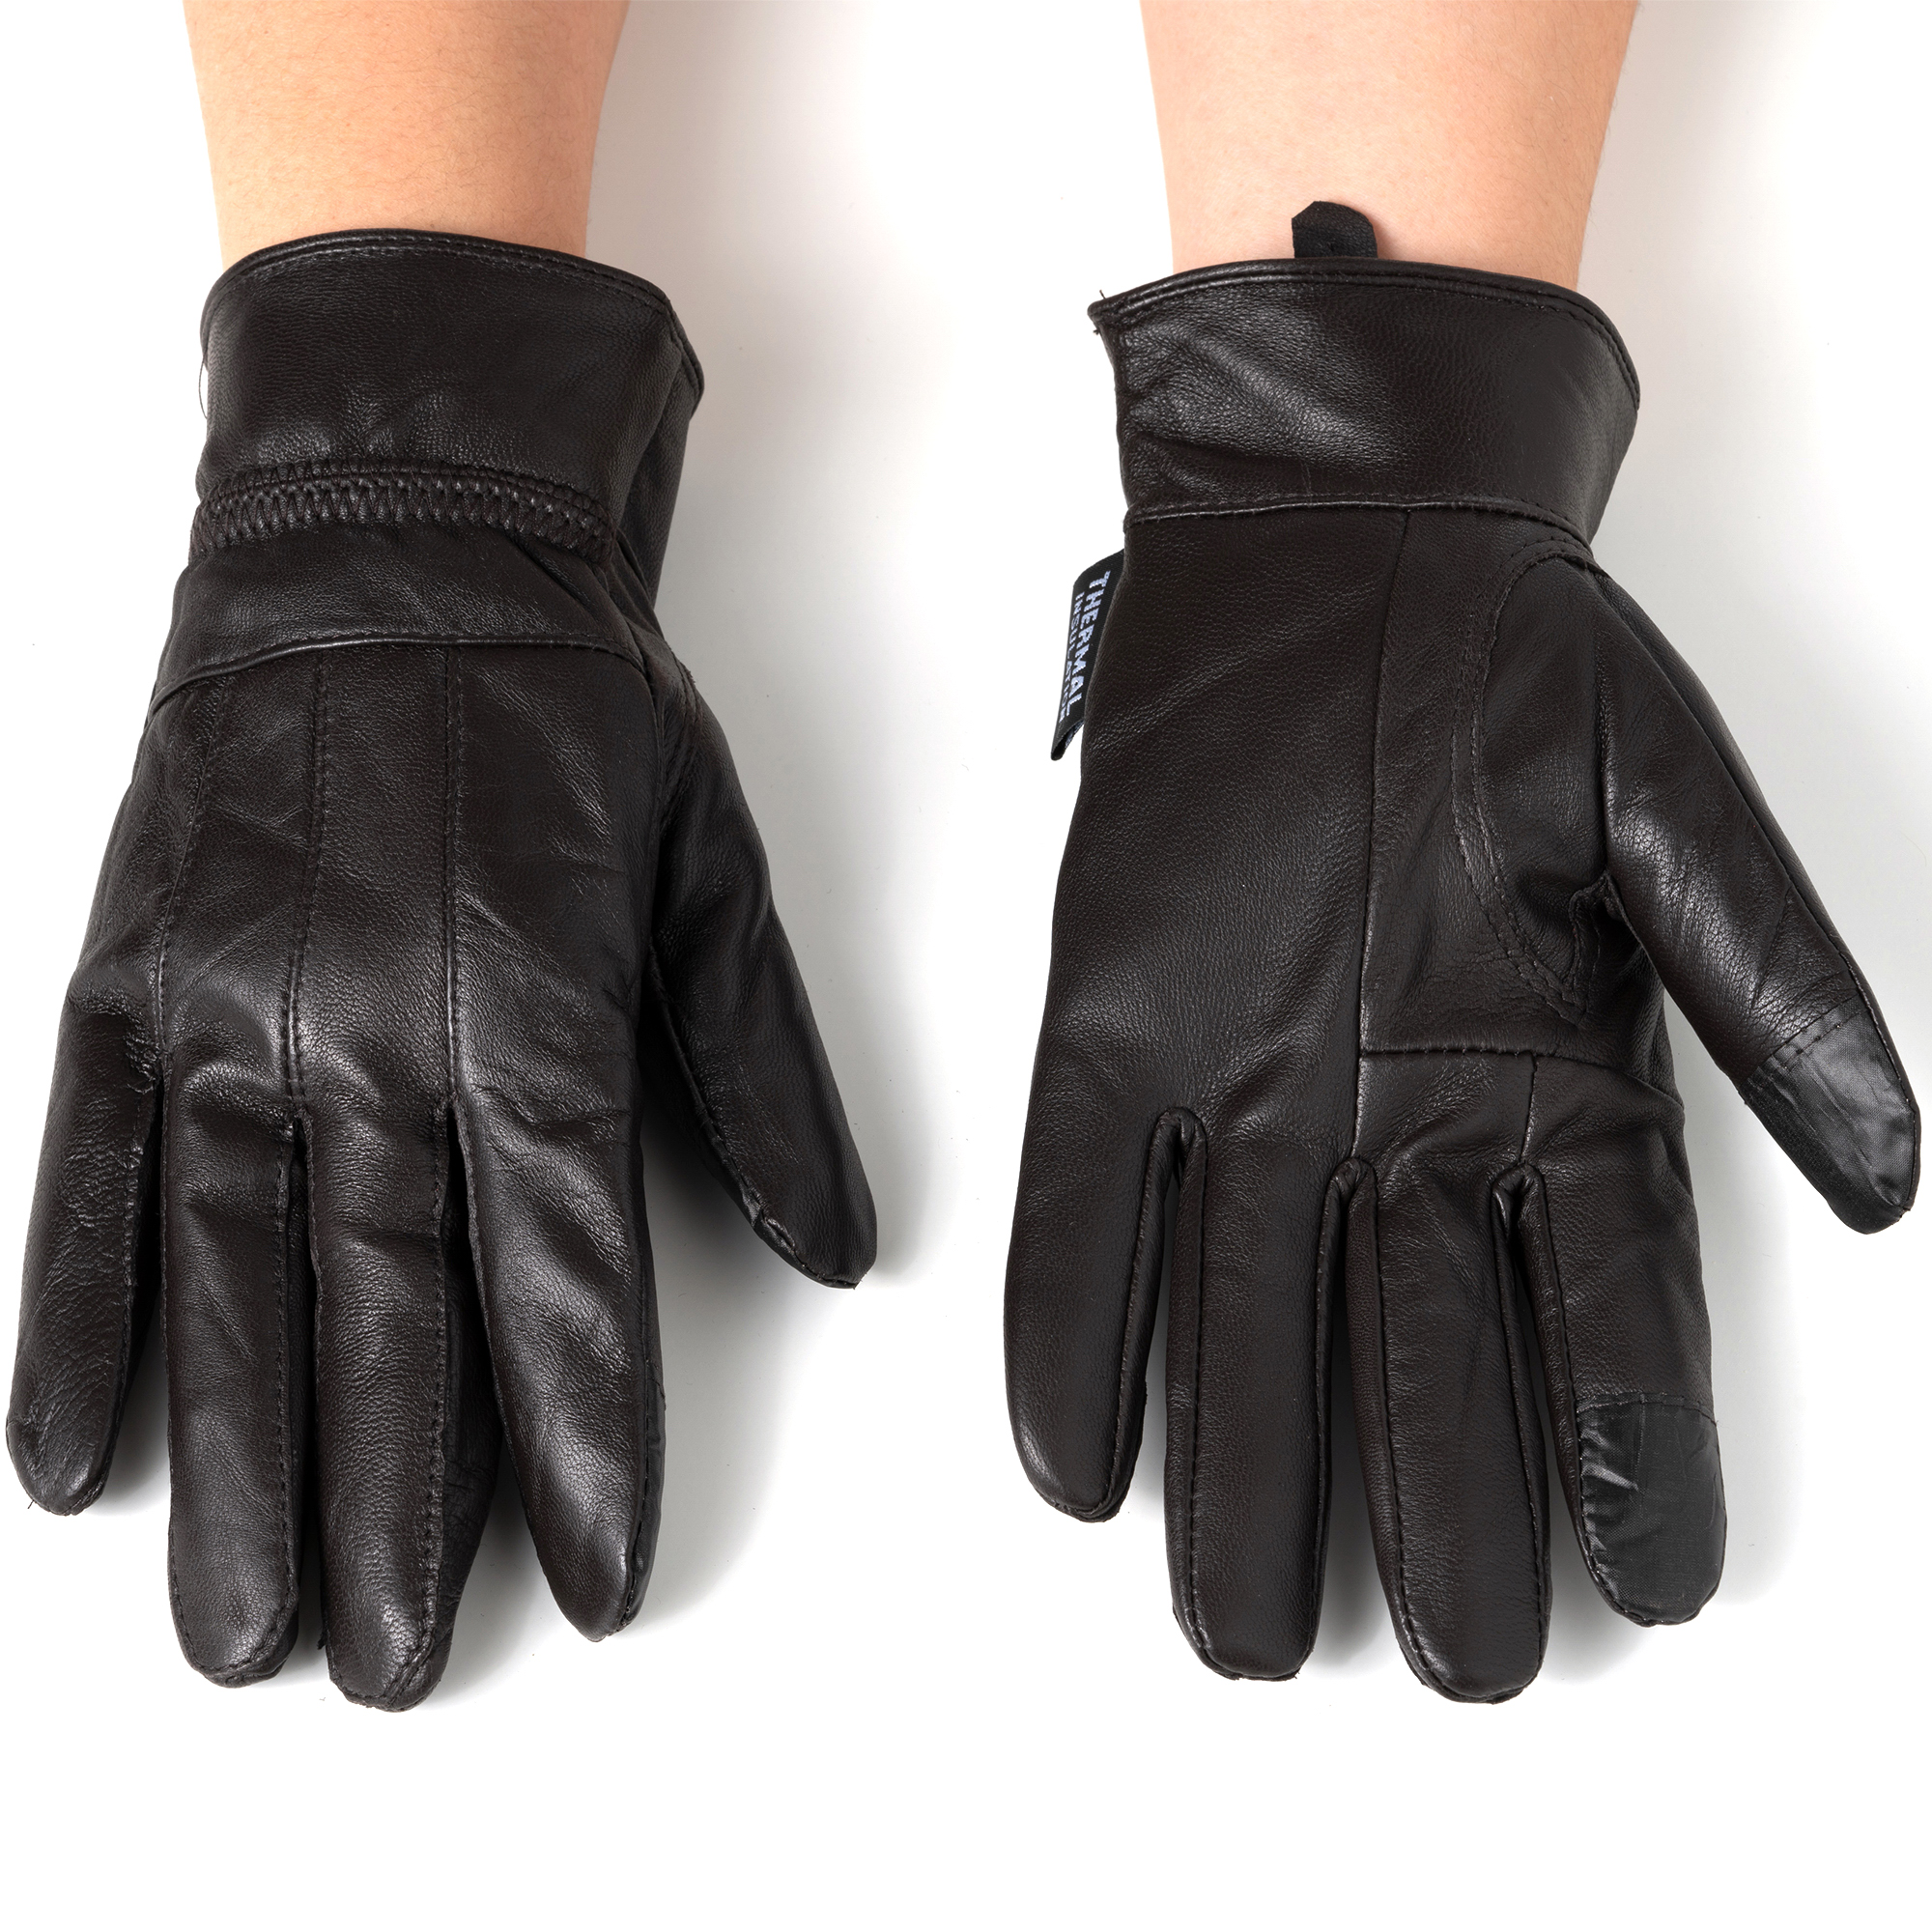 Alpine-Swiss-Womens-Touch-Screen-Gloves-Leather-Phone-Texting-Glove-Thermal-Warm thumbnail 24